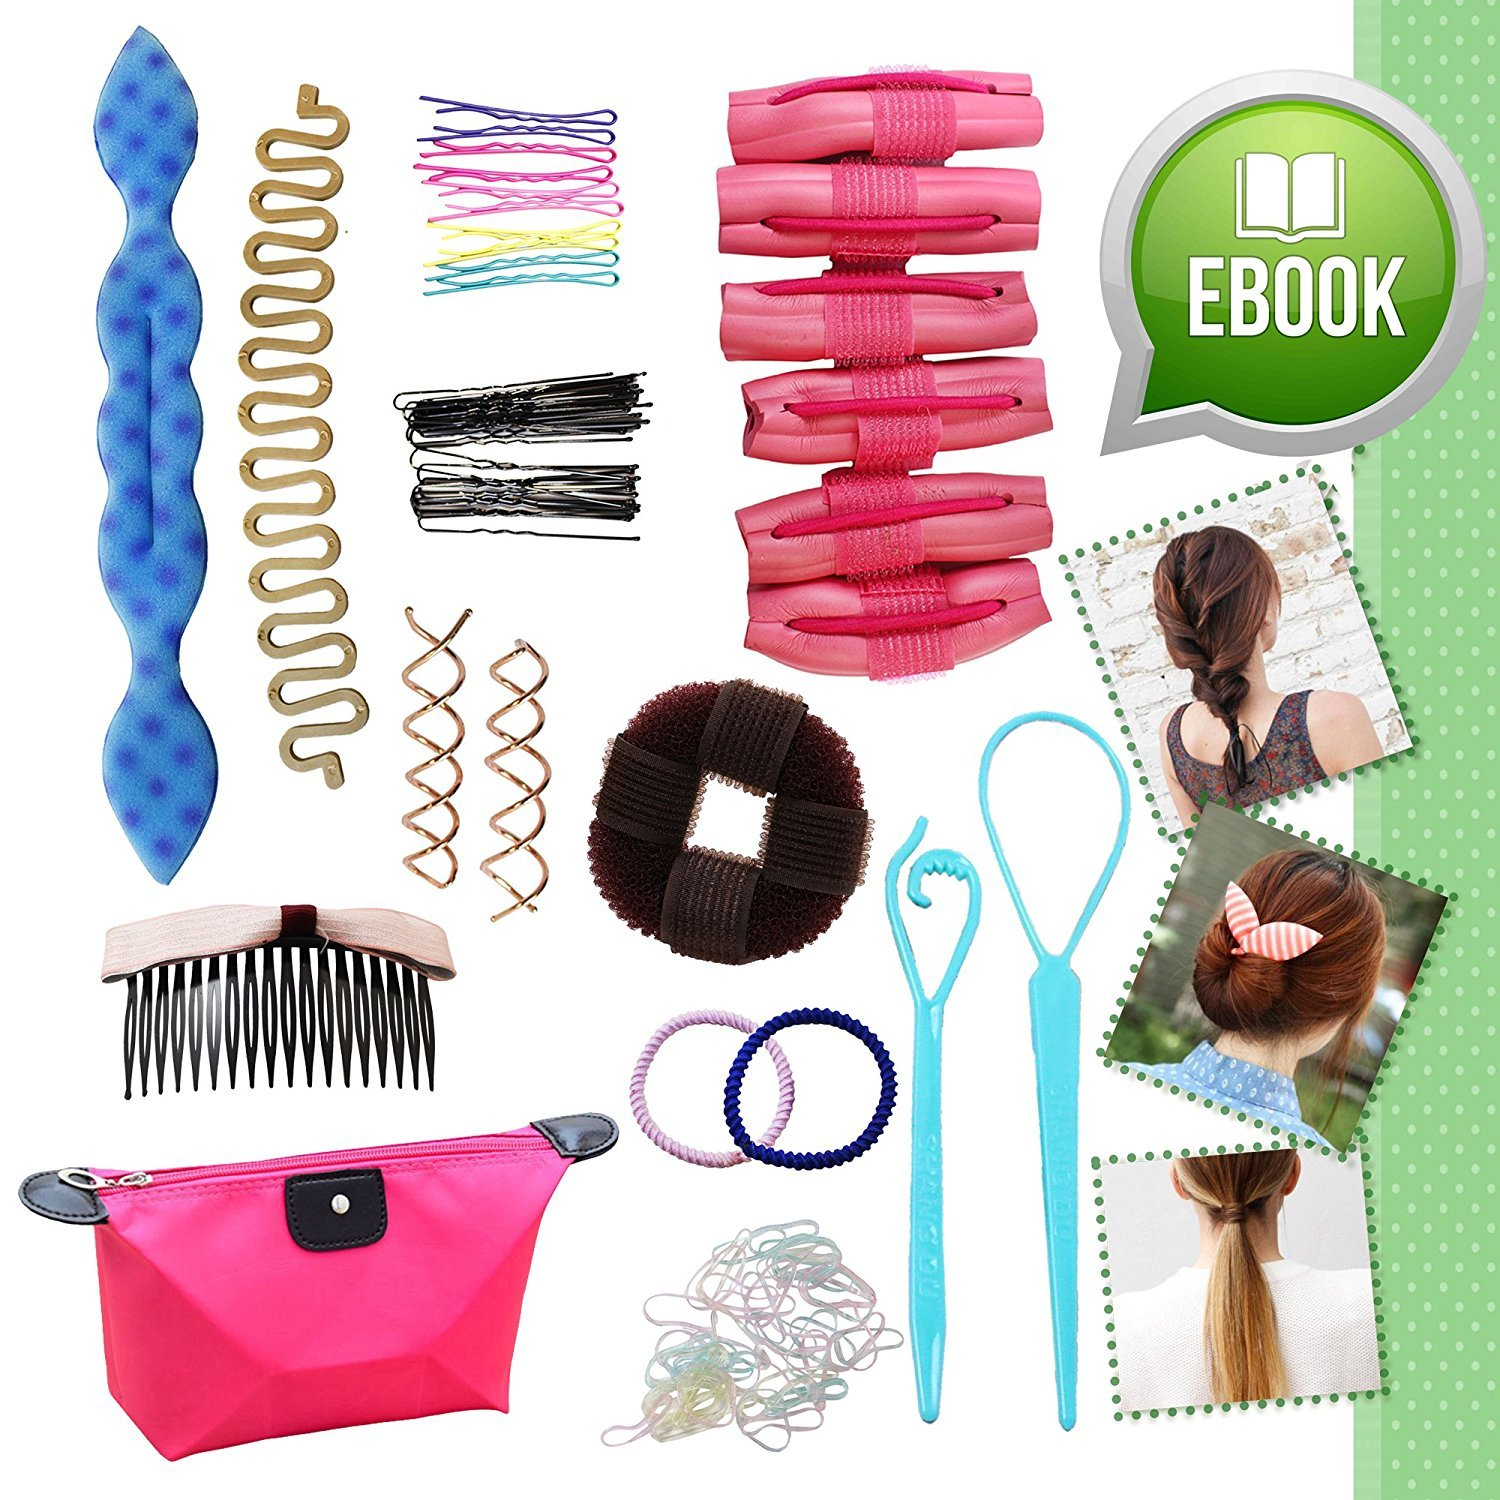 Ultimate Hair Styling Makeover Accessories Tool Kit Bonus eBOOK Gift Set for Girls Teens EasyTech Trading Pte. Ltd.